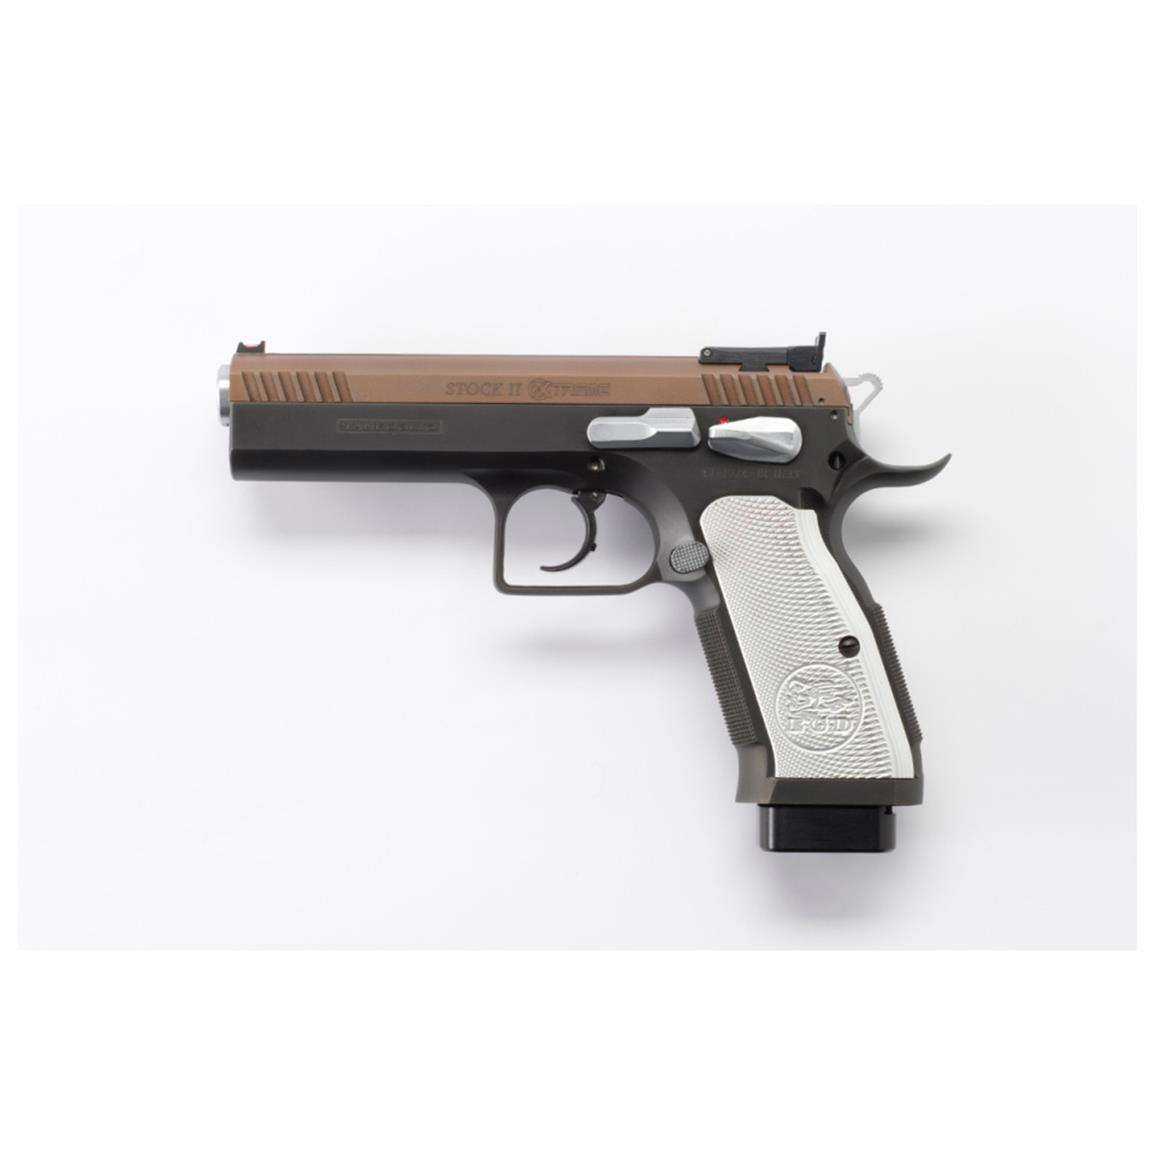 "EAA Tanfoglio Witness Stock II Xtreme, Semi-Automatic, .40 S&W, 4.5"" Barrel, 14+1 Rounds"